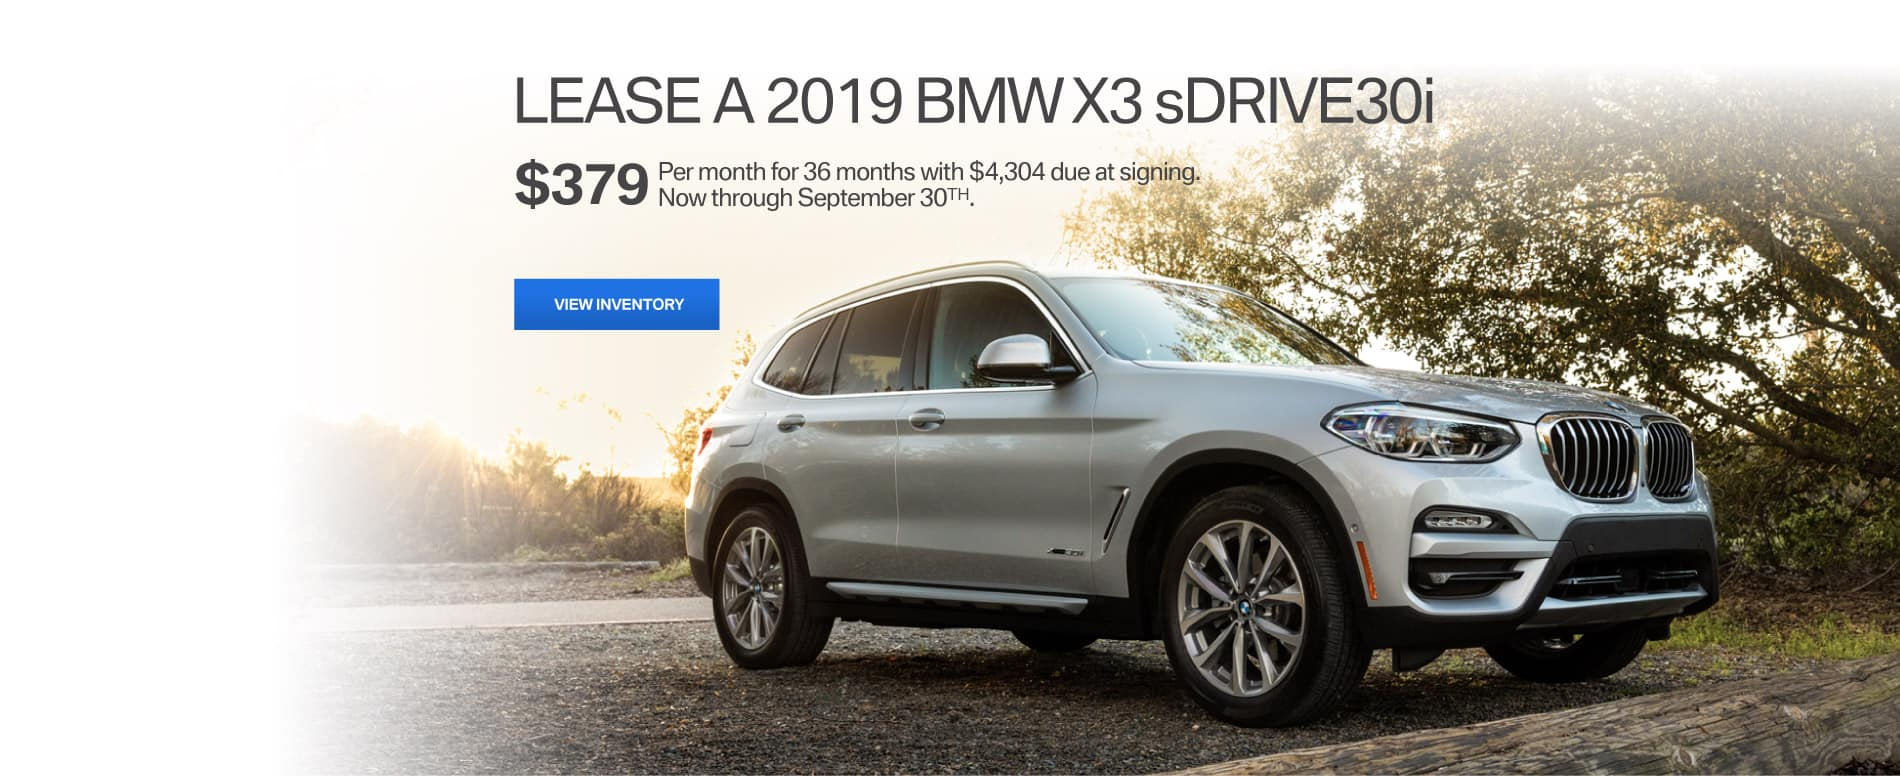 BMW of Murrieta | BMW & Pre-Owned Dealer Southern California